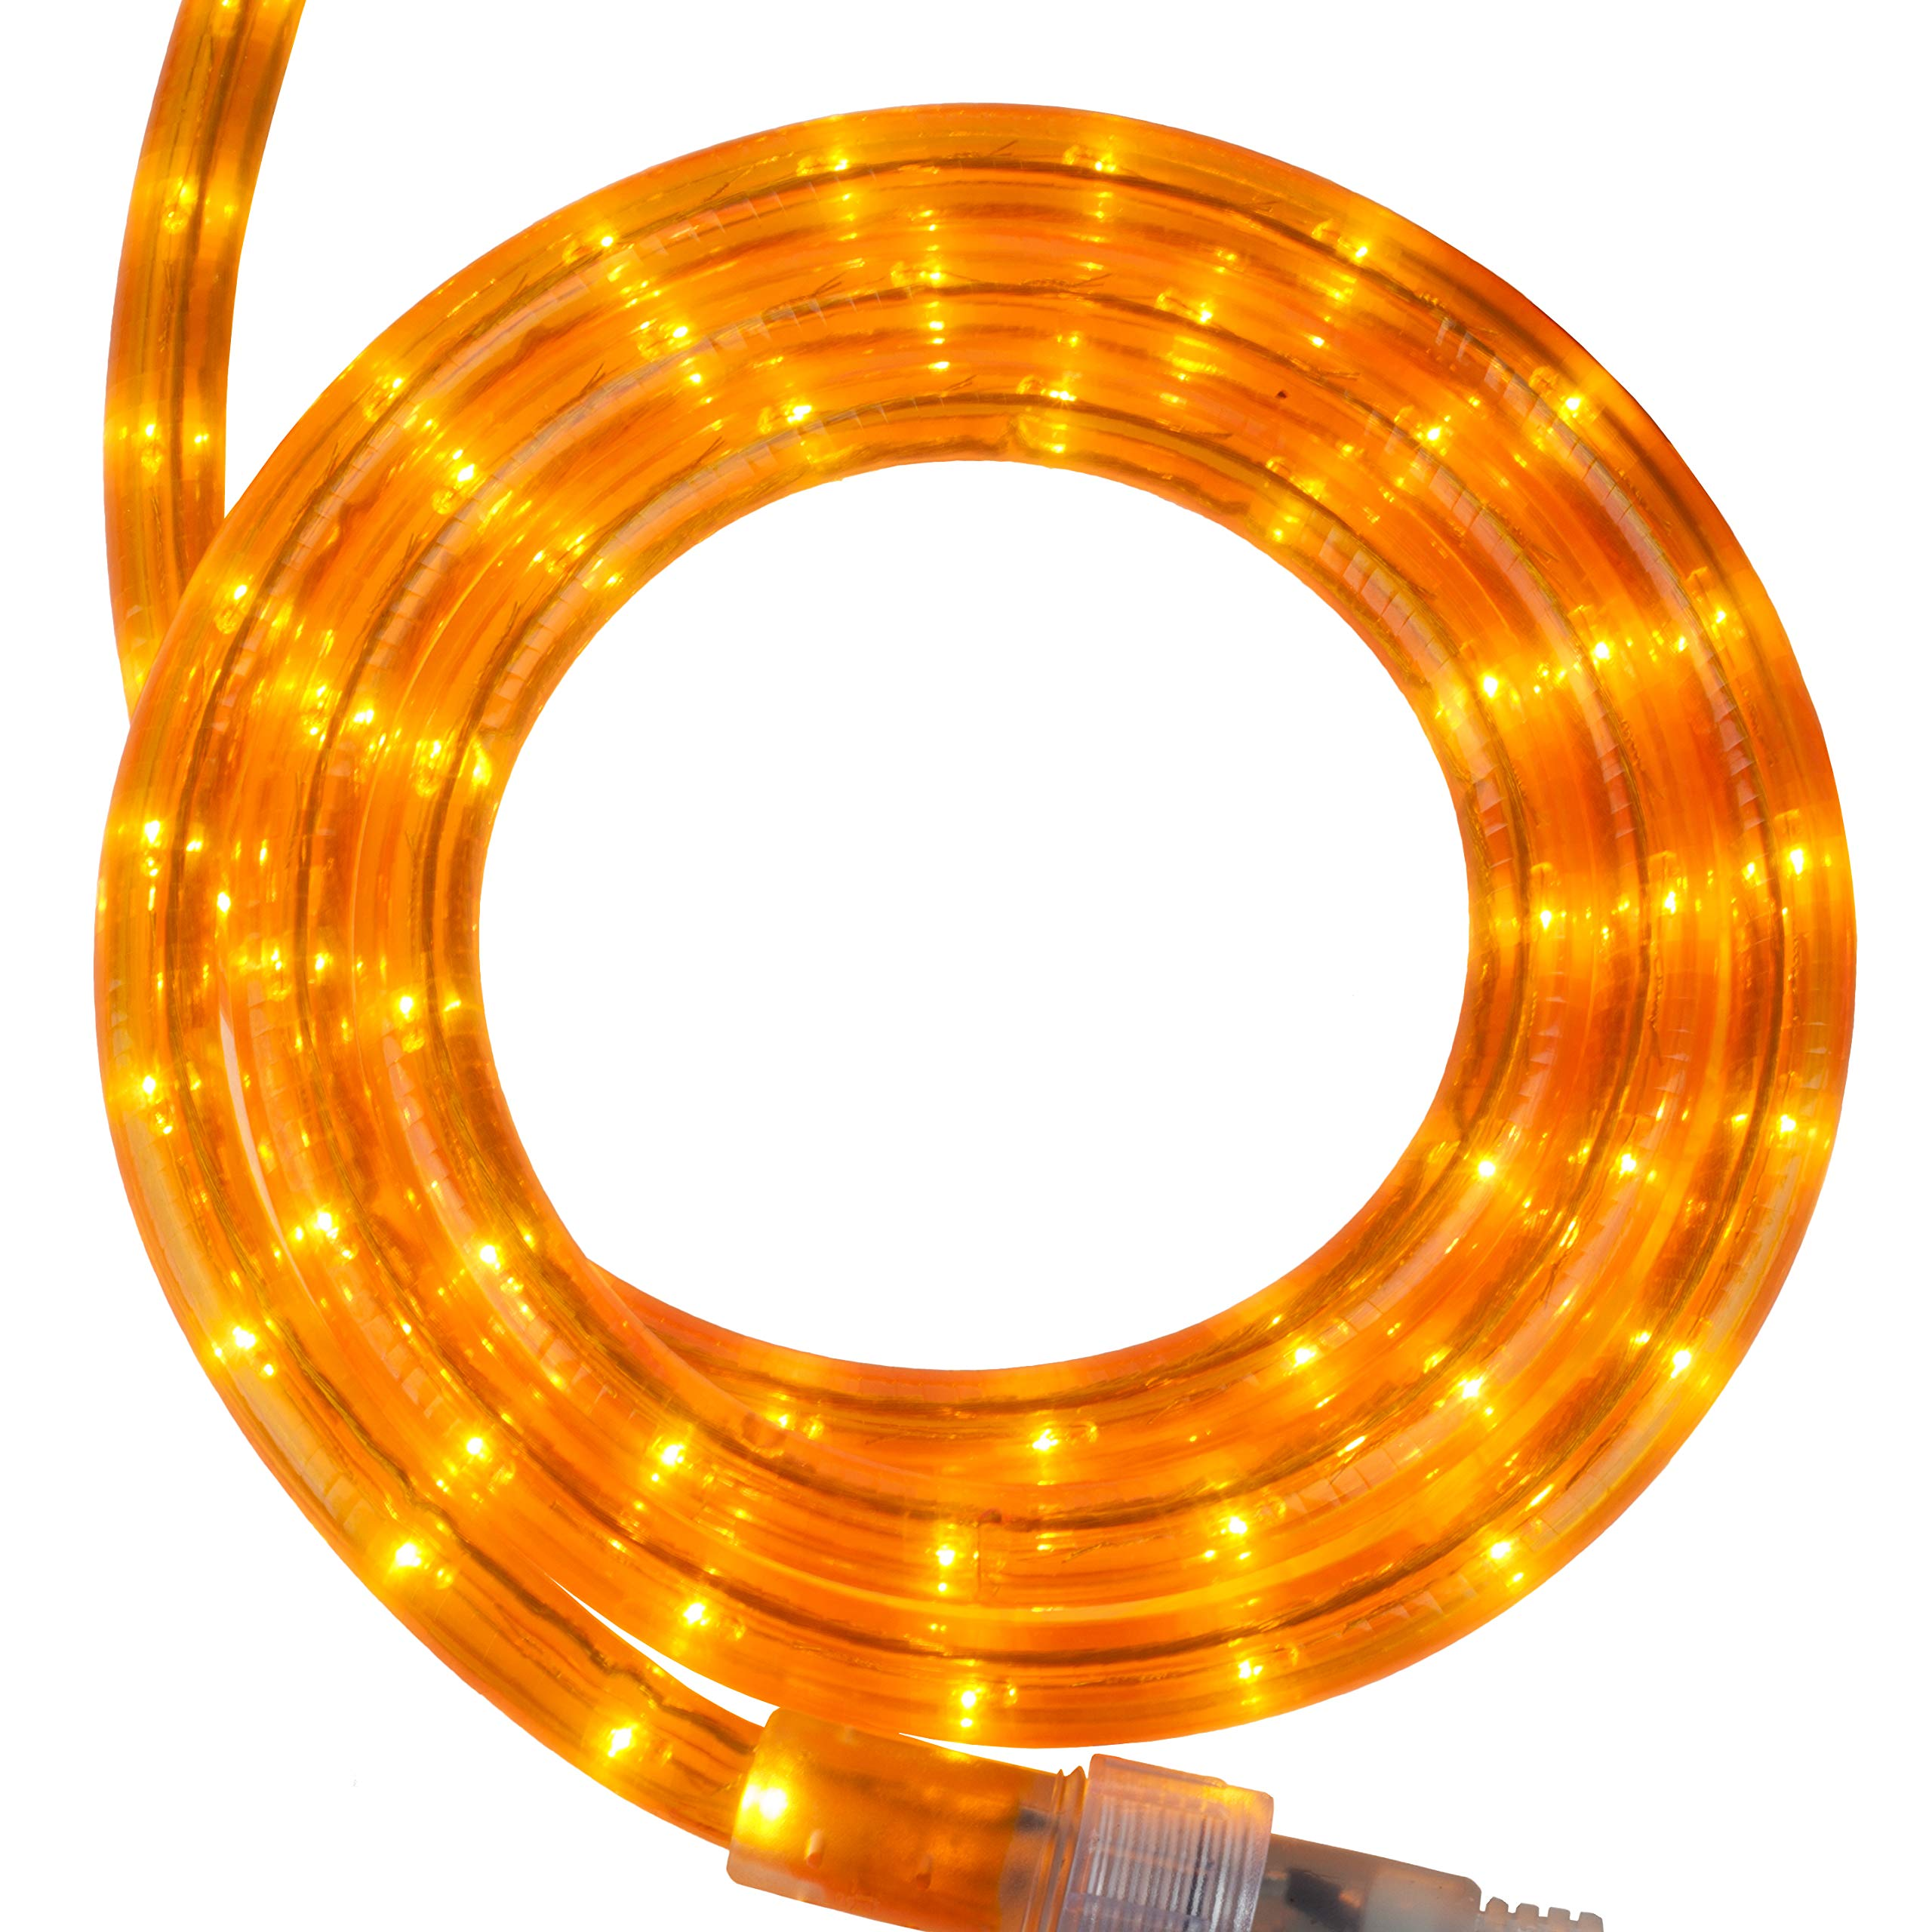 Incandescent Rope Light Kit – Light Rope Outdoor, Christmas Light Rope Light Color – Non LED Rope Light, Includes Rope Light Clips and Power Cord, 120V, ½ Inch, 2-Wire (12', Orange)